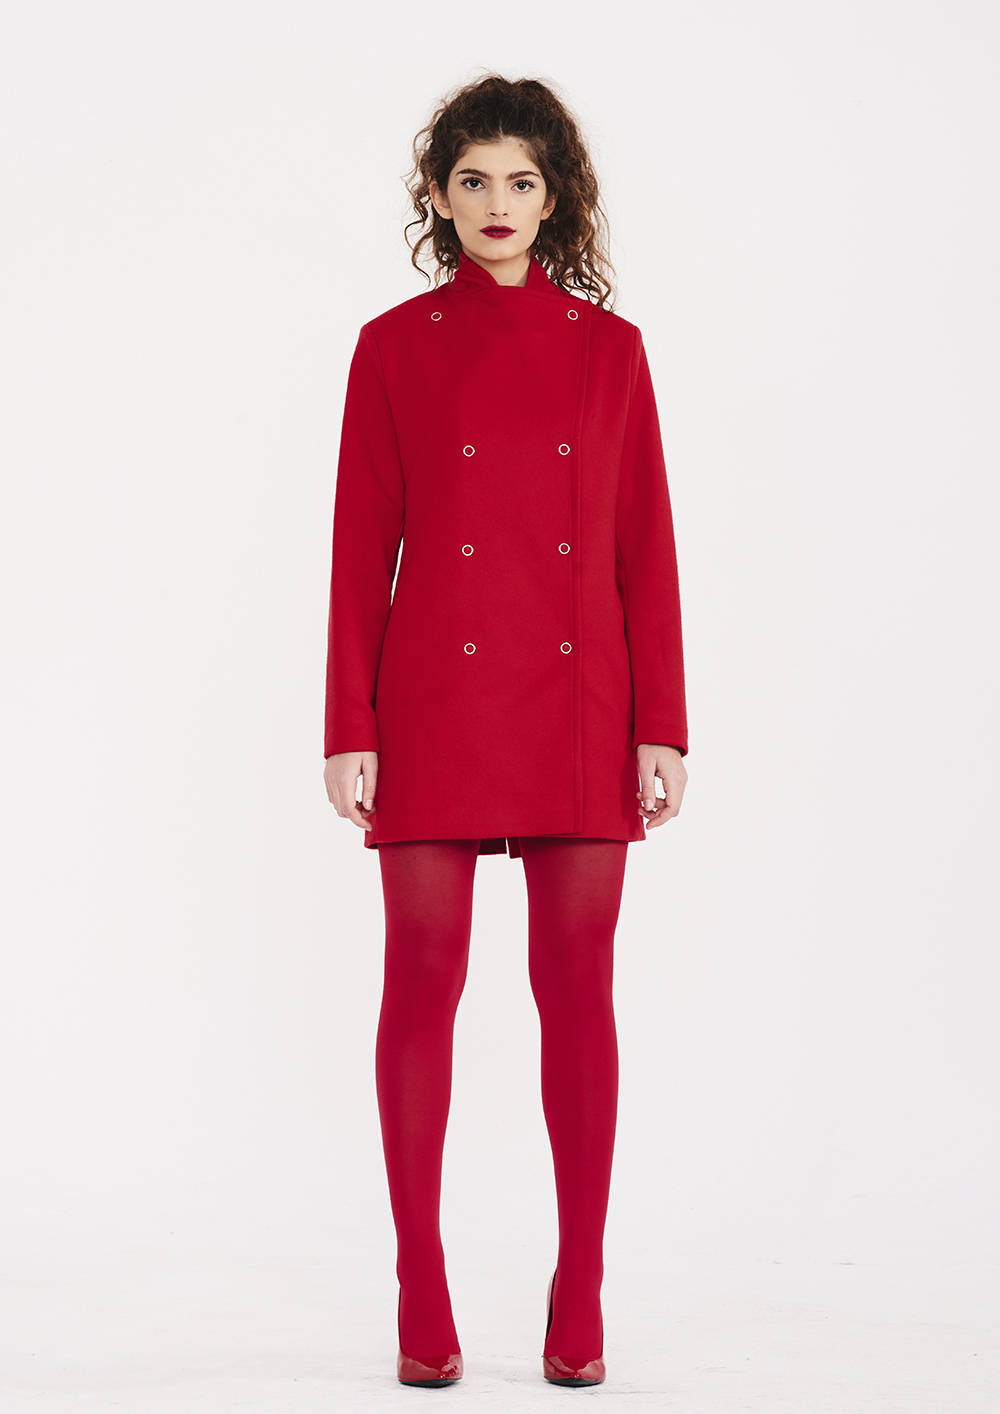 5f1464e9b Red Coat With Buttons